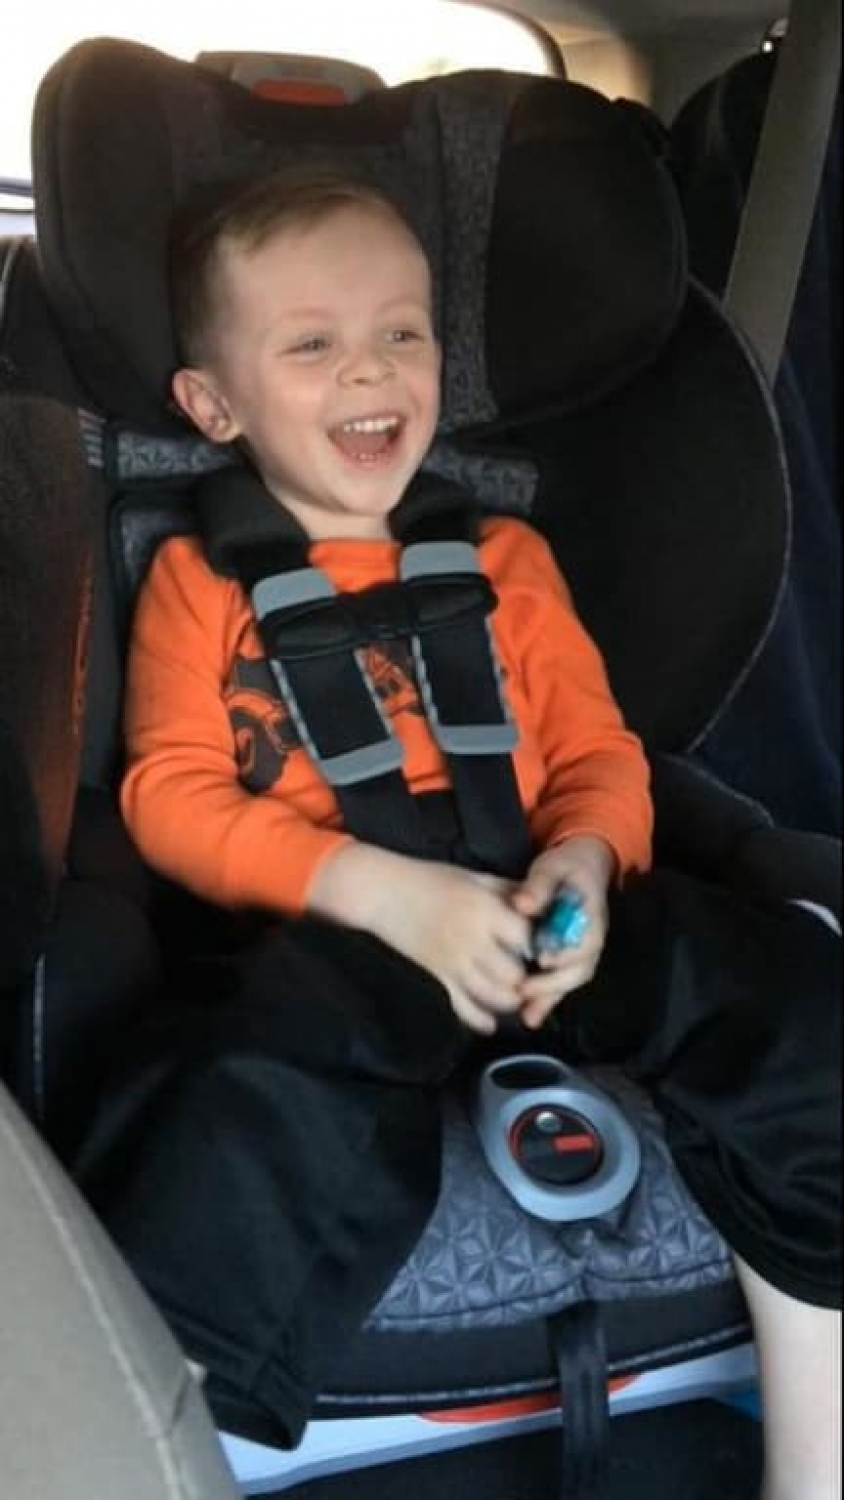 We Love These Car Seats Still Have A While Until The Oldest Outgrows His But When He Does Will Certainly Replace It With Britax Booster